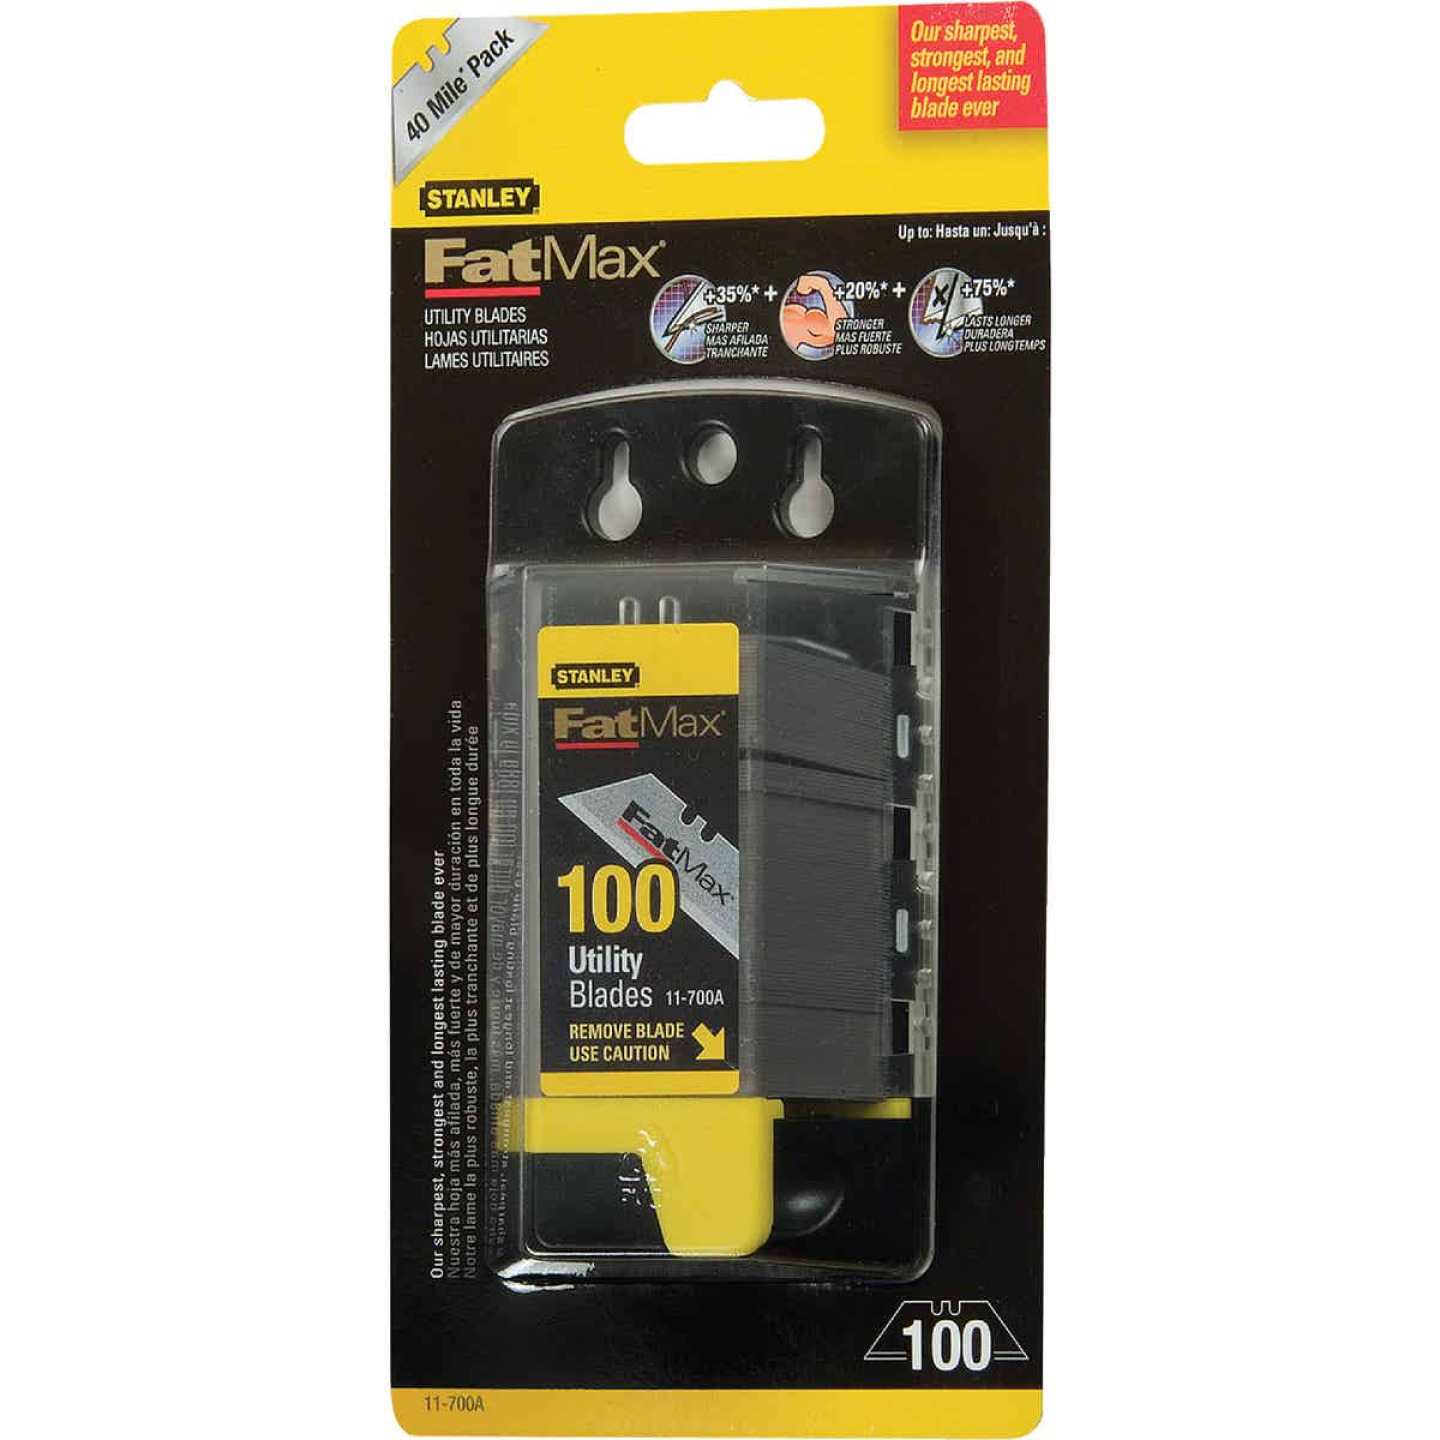 Stanley FatMax 2-Point 2-7/16 In. Utility Knife Blade (100-Pack) Image 3